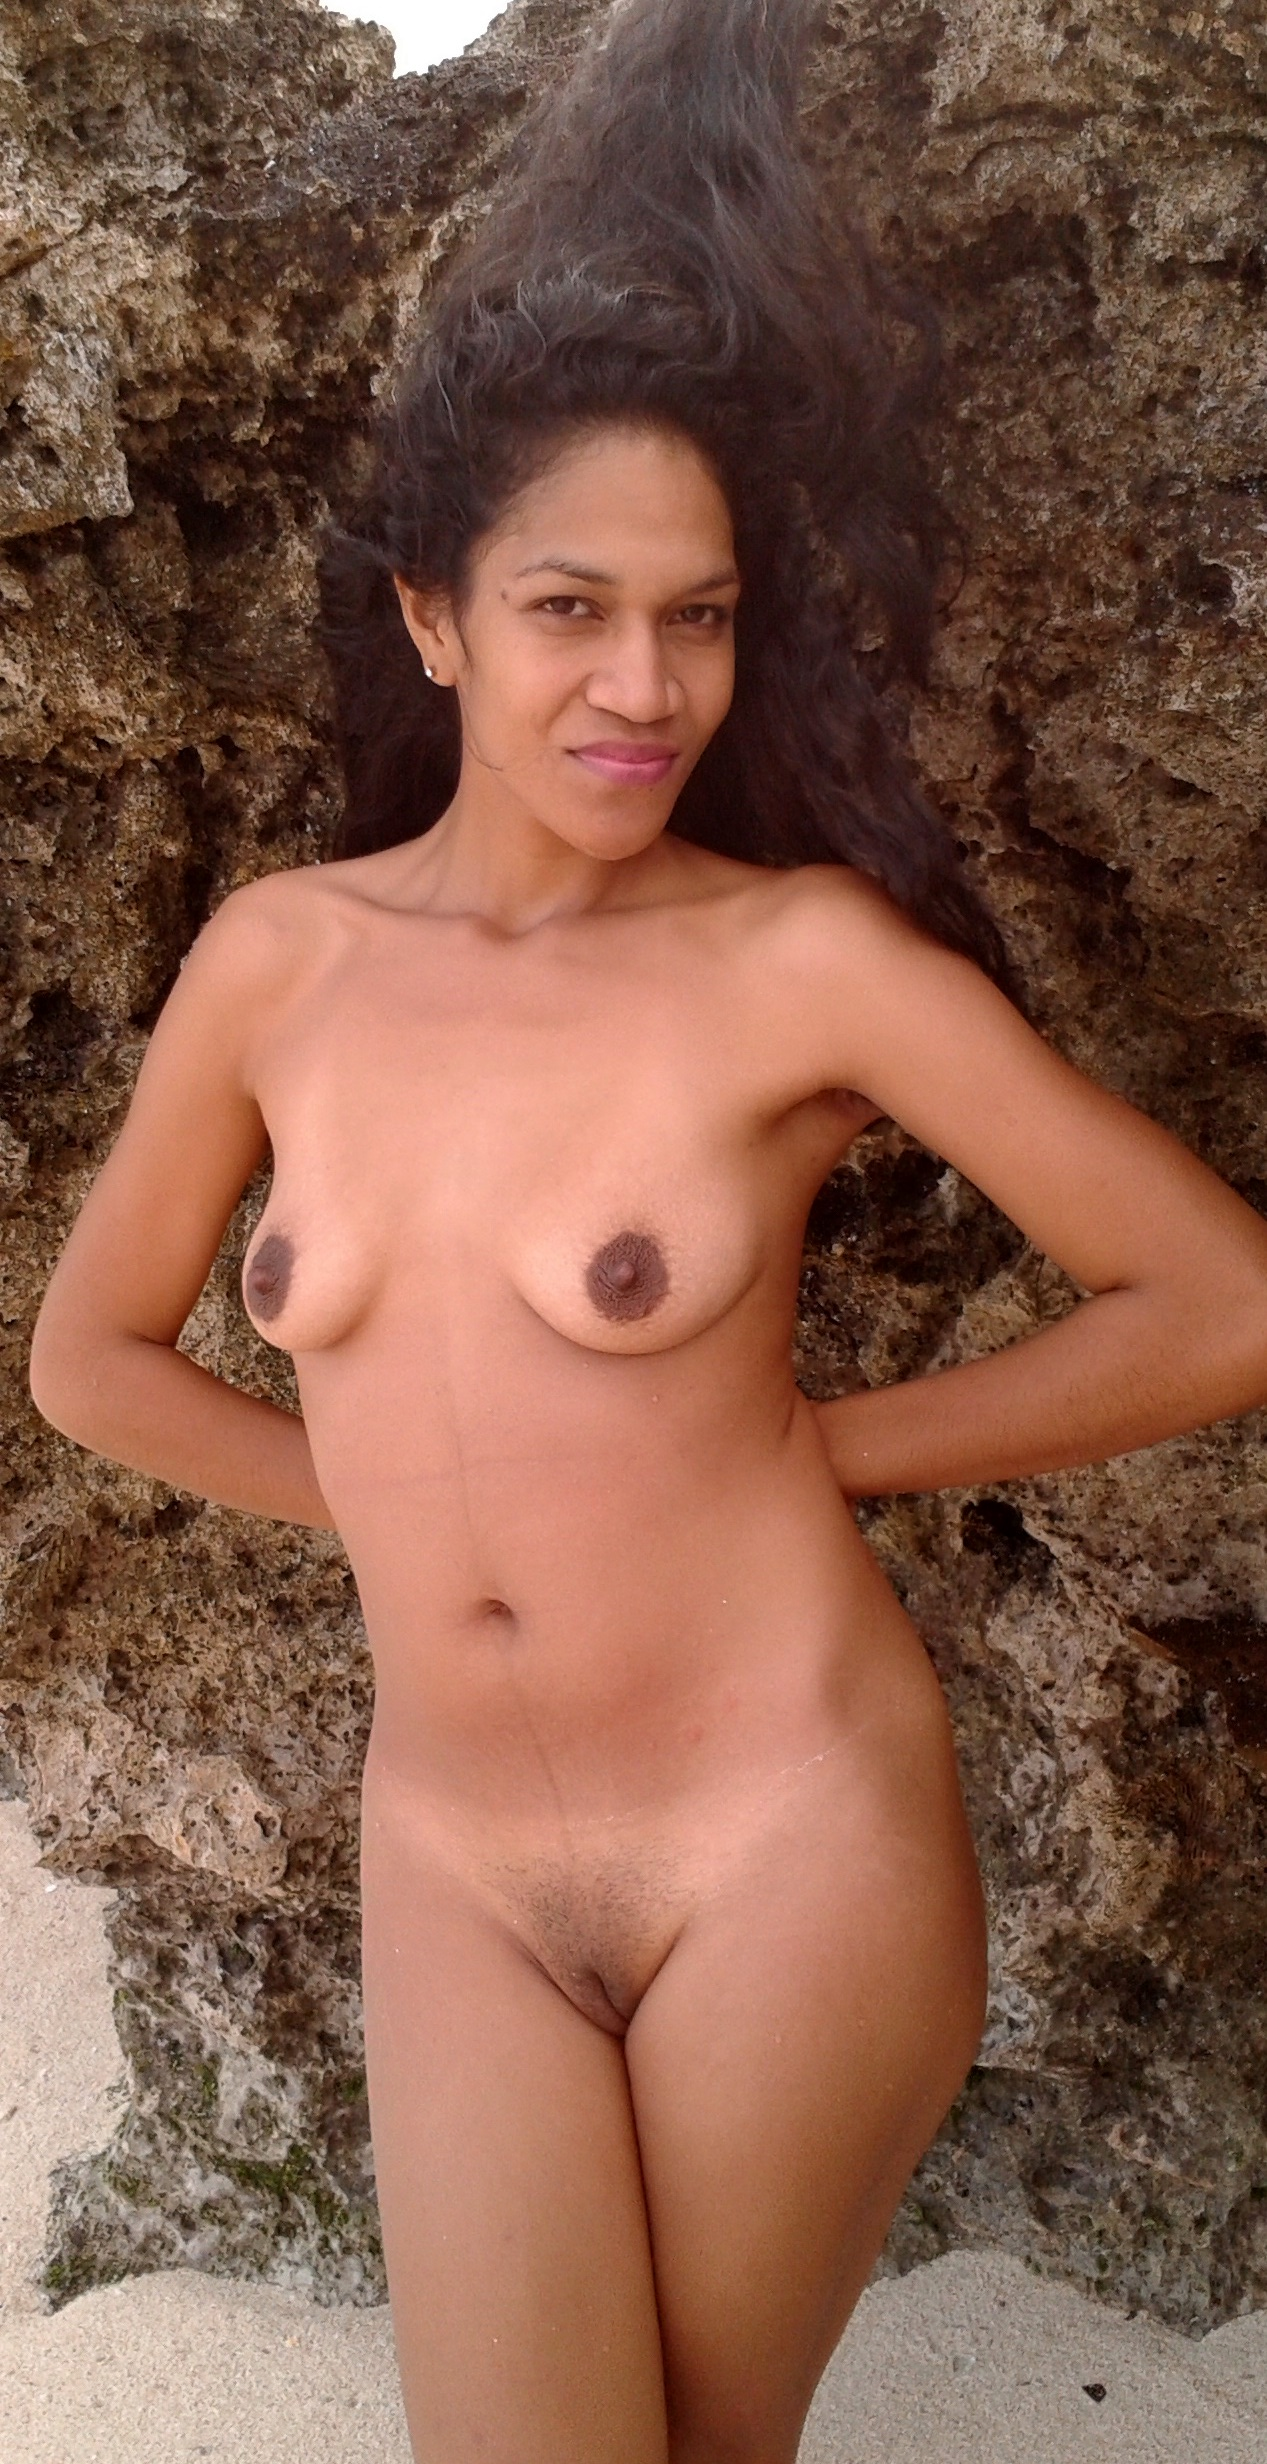 moving pics of hot naked tits